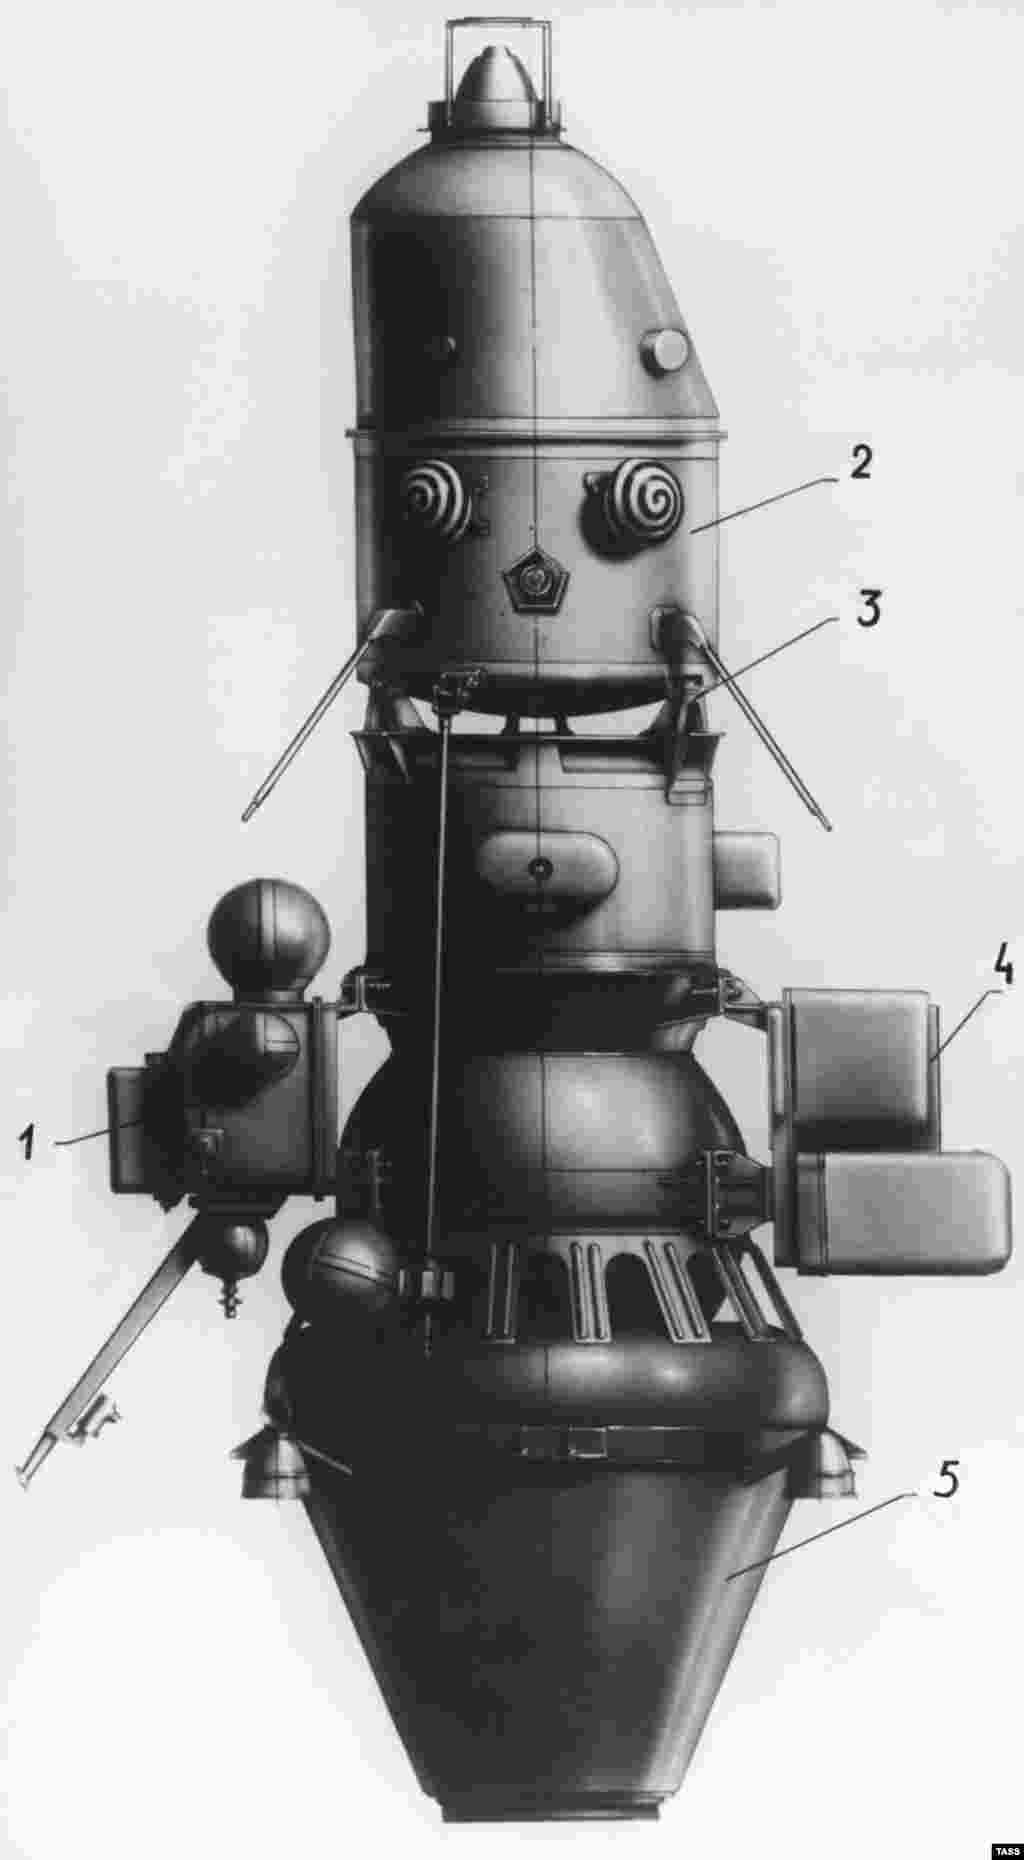 With its horror-clown eyes, the Soviets' Luna-10 was a little unlovable. But its mission marked a significant moment during the space race when, in 1966, it became the first craft to orbit the moon.